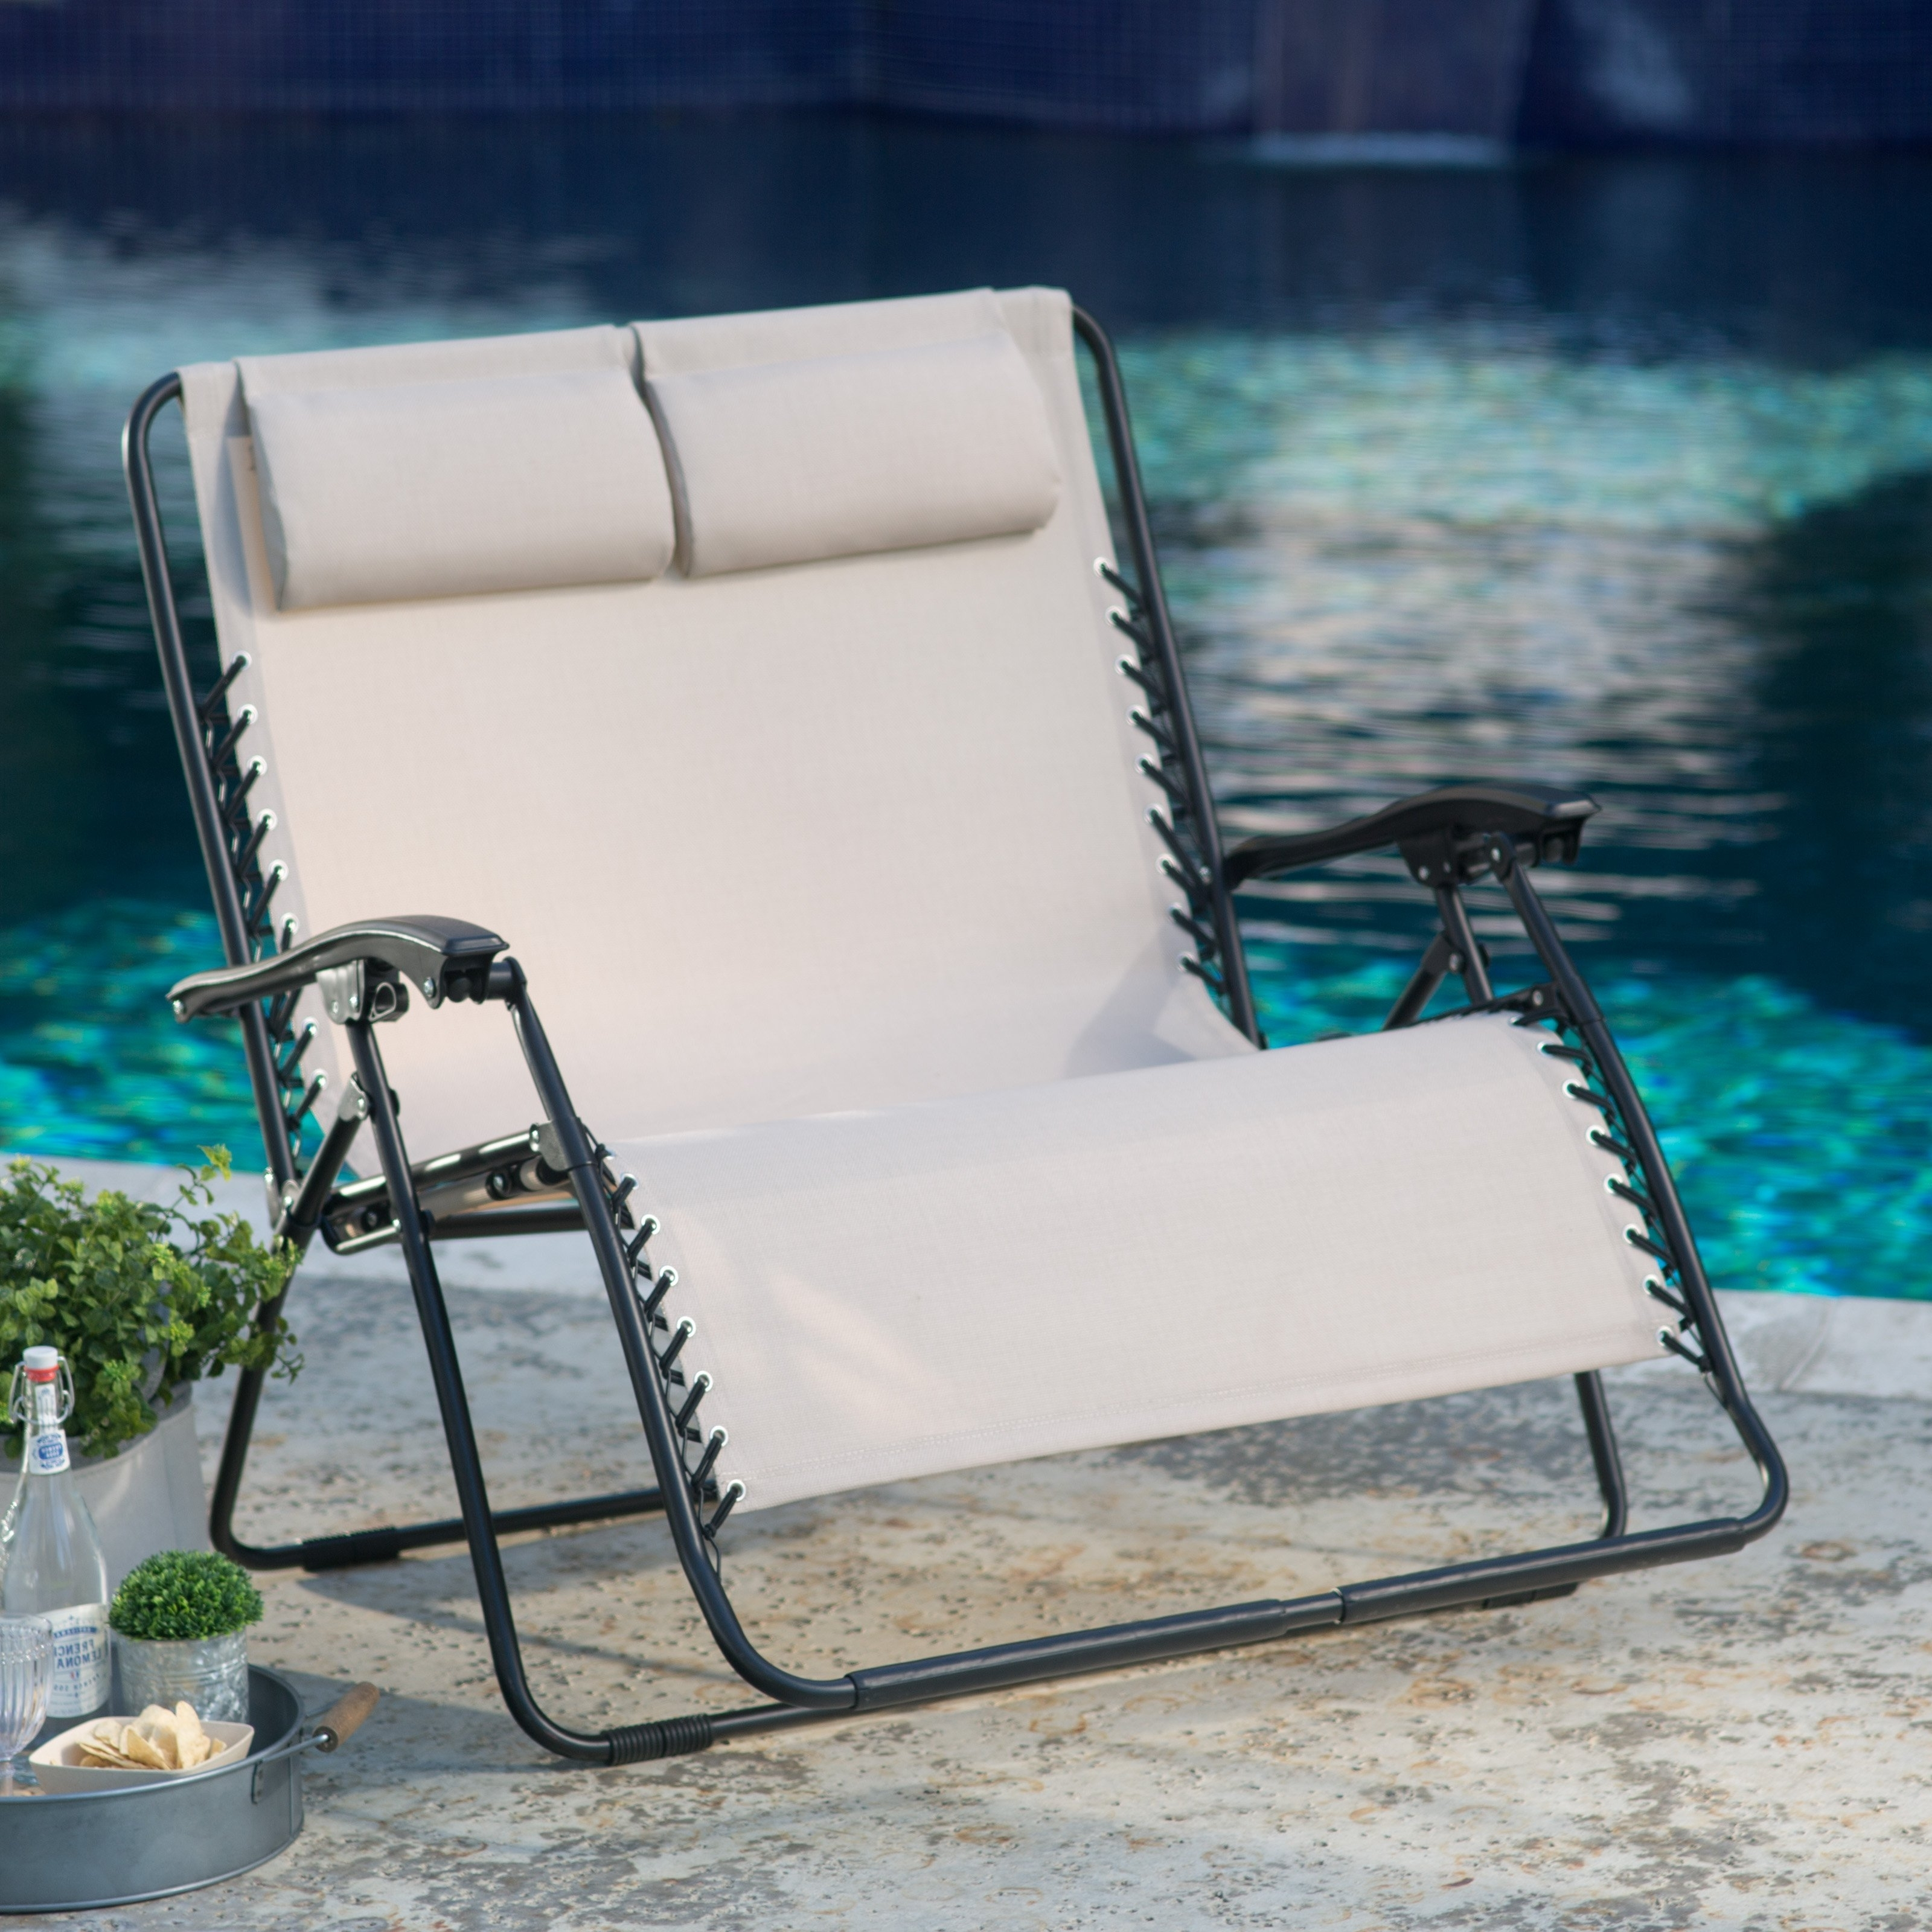 Zero Gravity Chaise Lounges For Famous Caravan Sports Zero Gravity Lounge Chair (View 11 of 15)